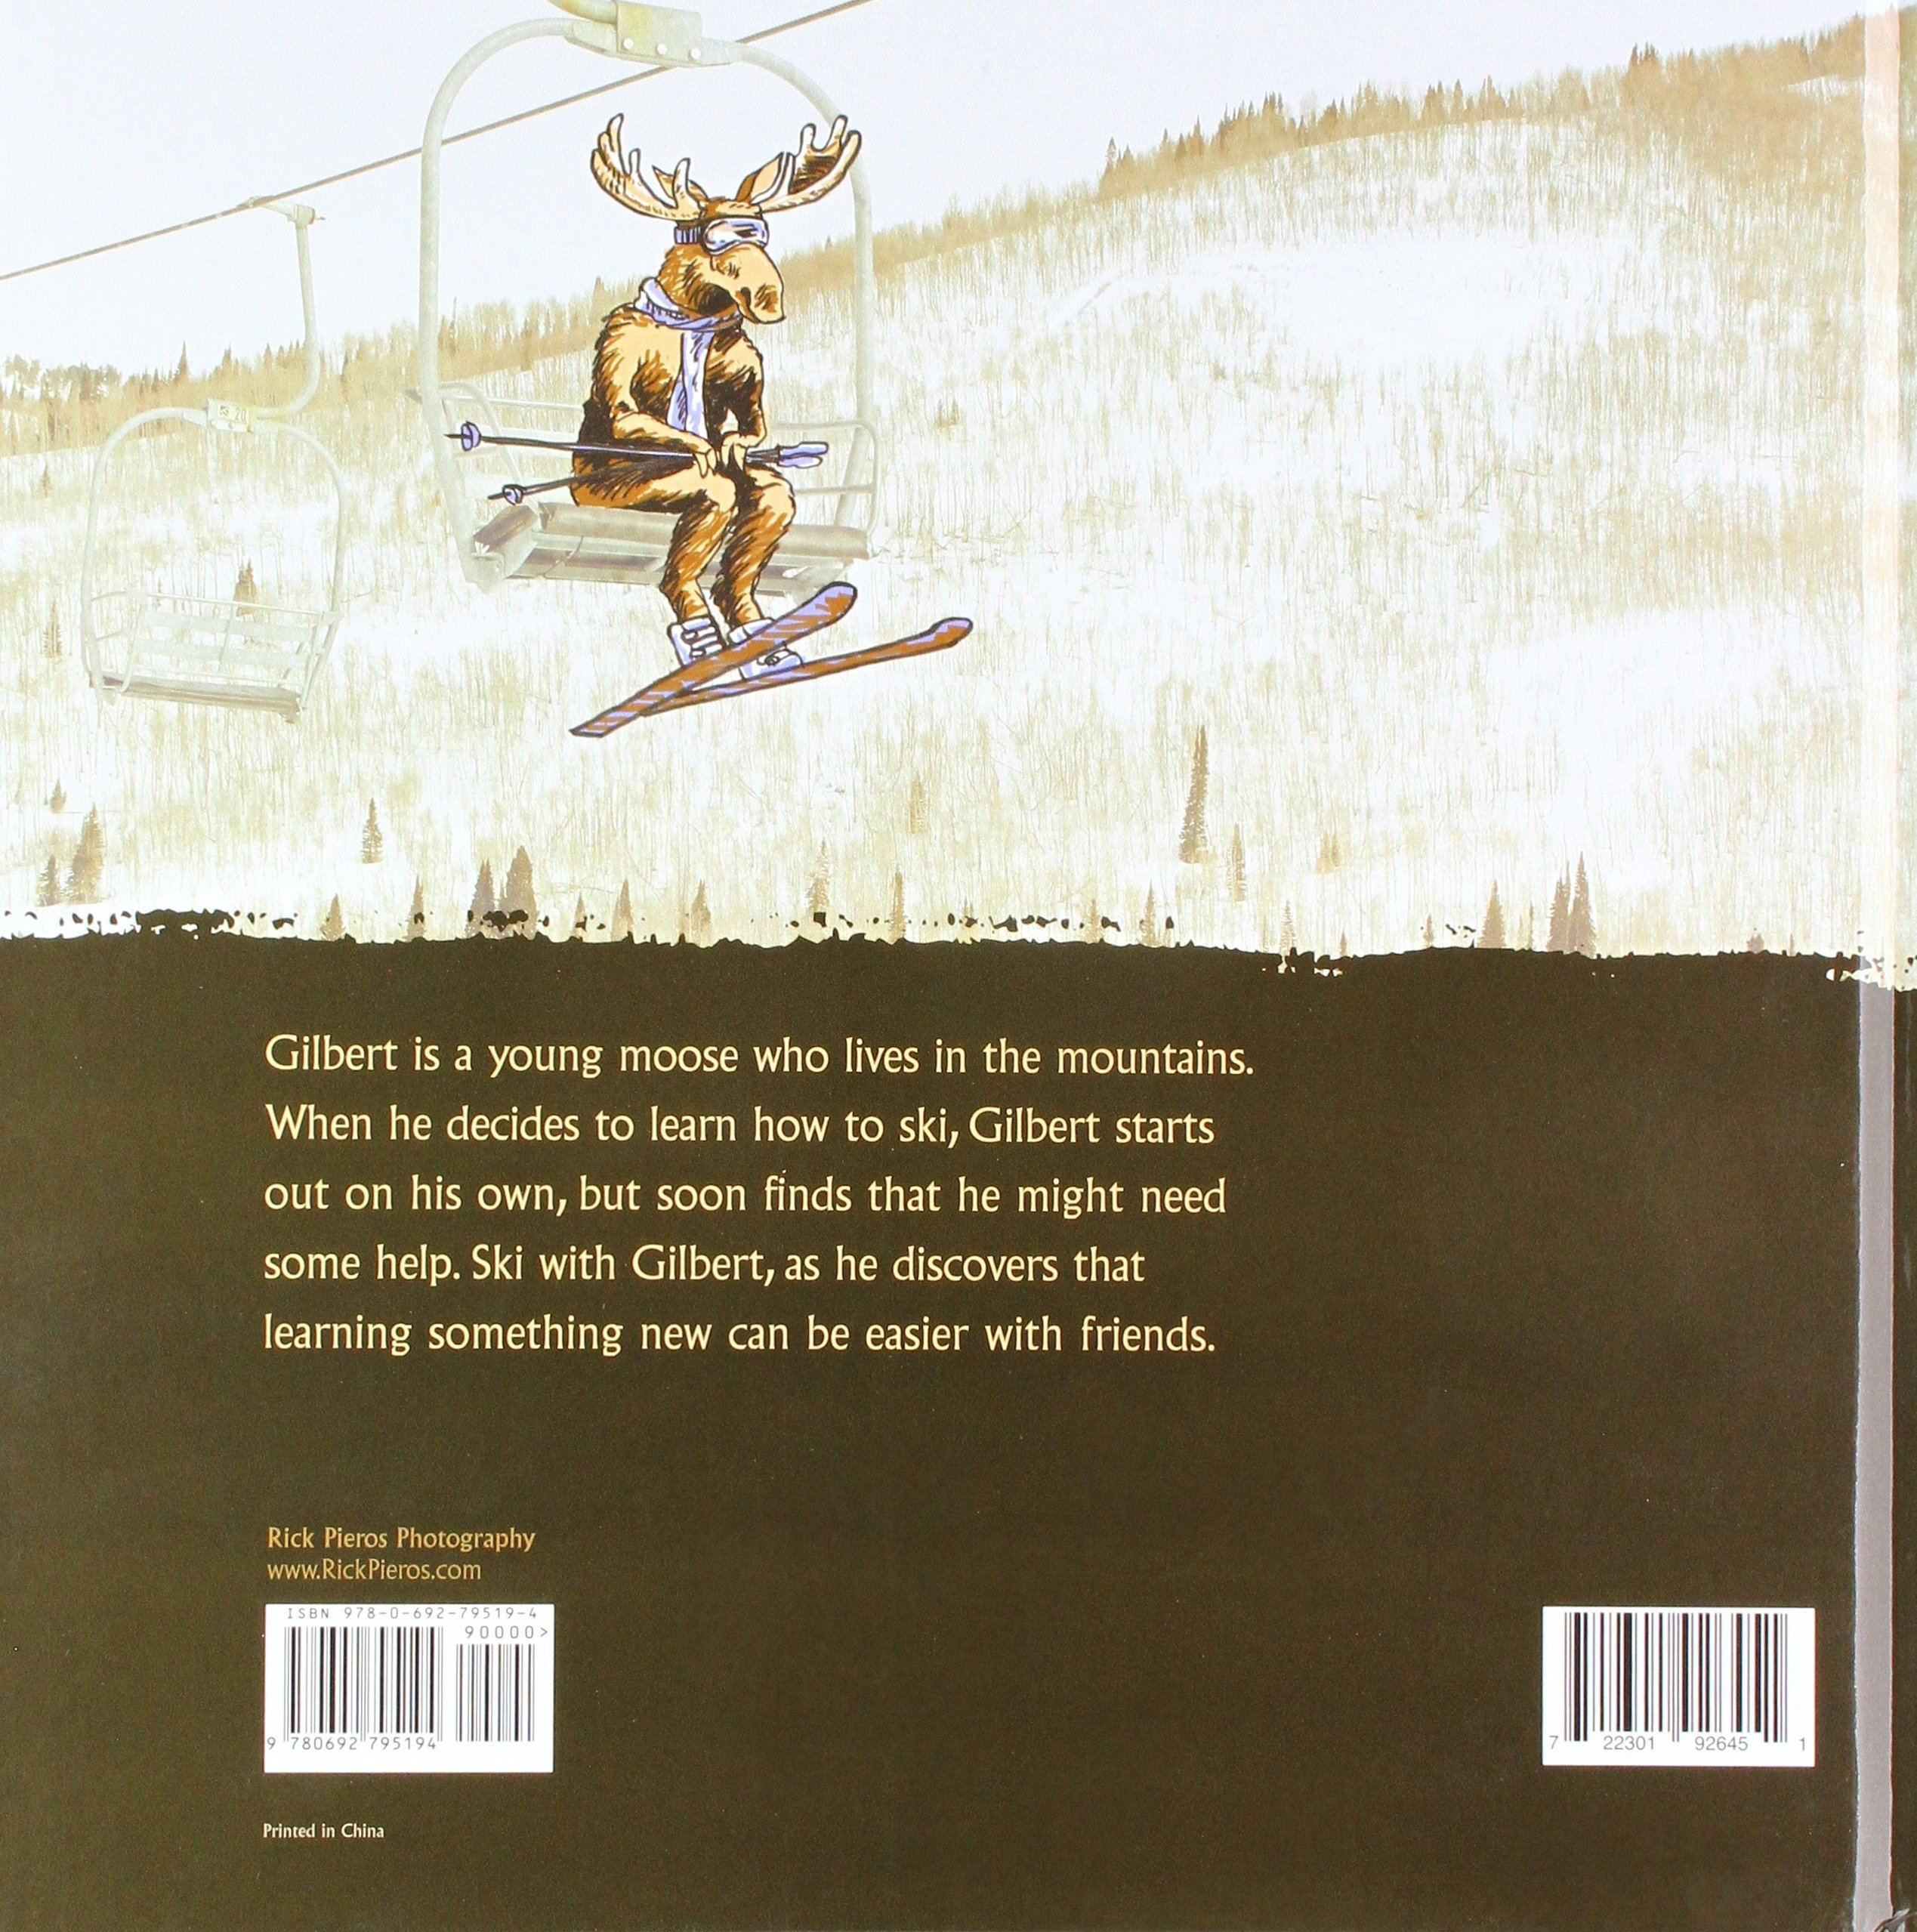 Gilbert the Moose Learns How to Ski by Rick Pieros Photography (Image #2)